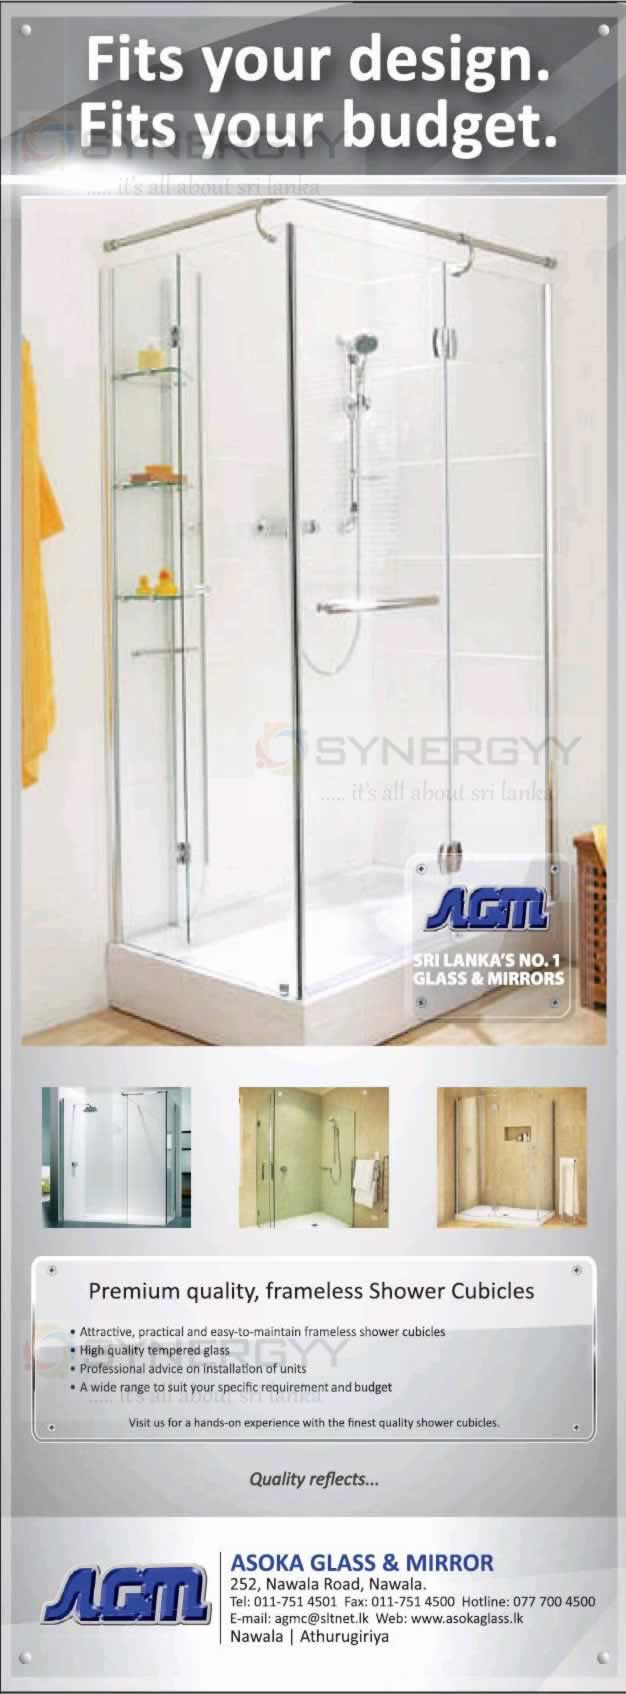 Luxury Shower Cubicle For Sale Images - Bathroom with Bathtub Ideas ...